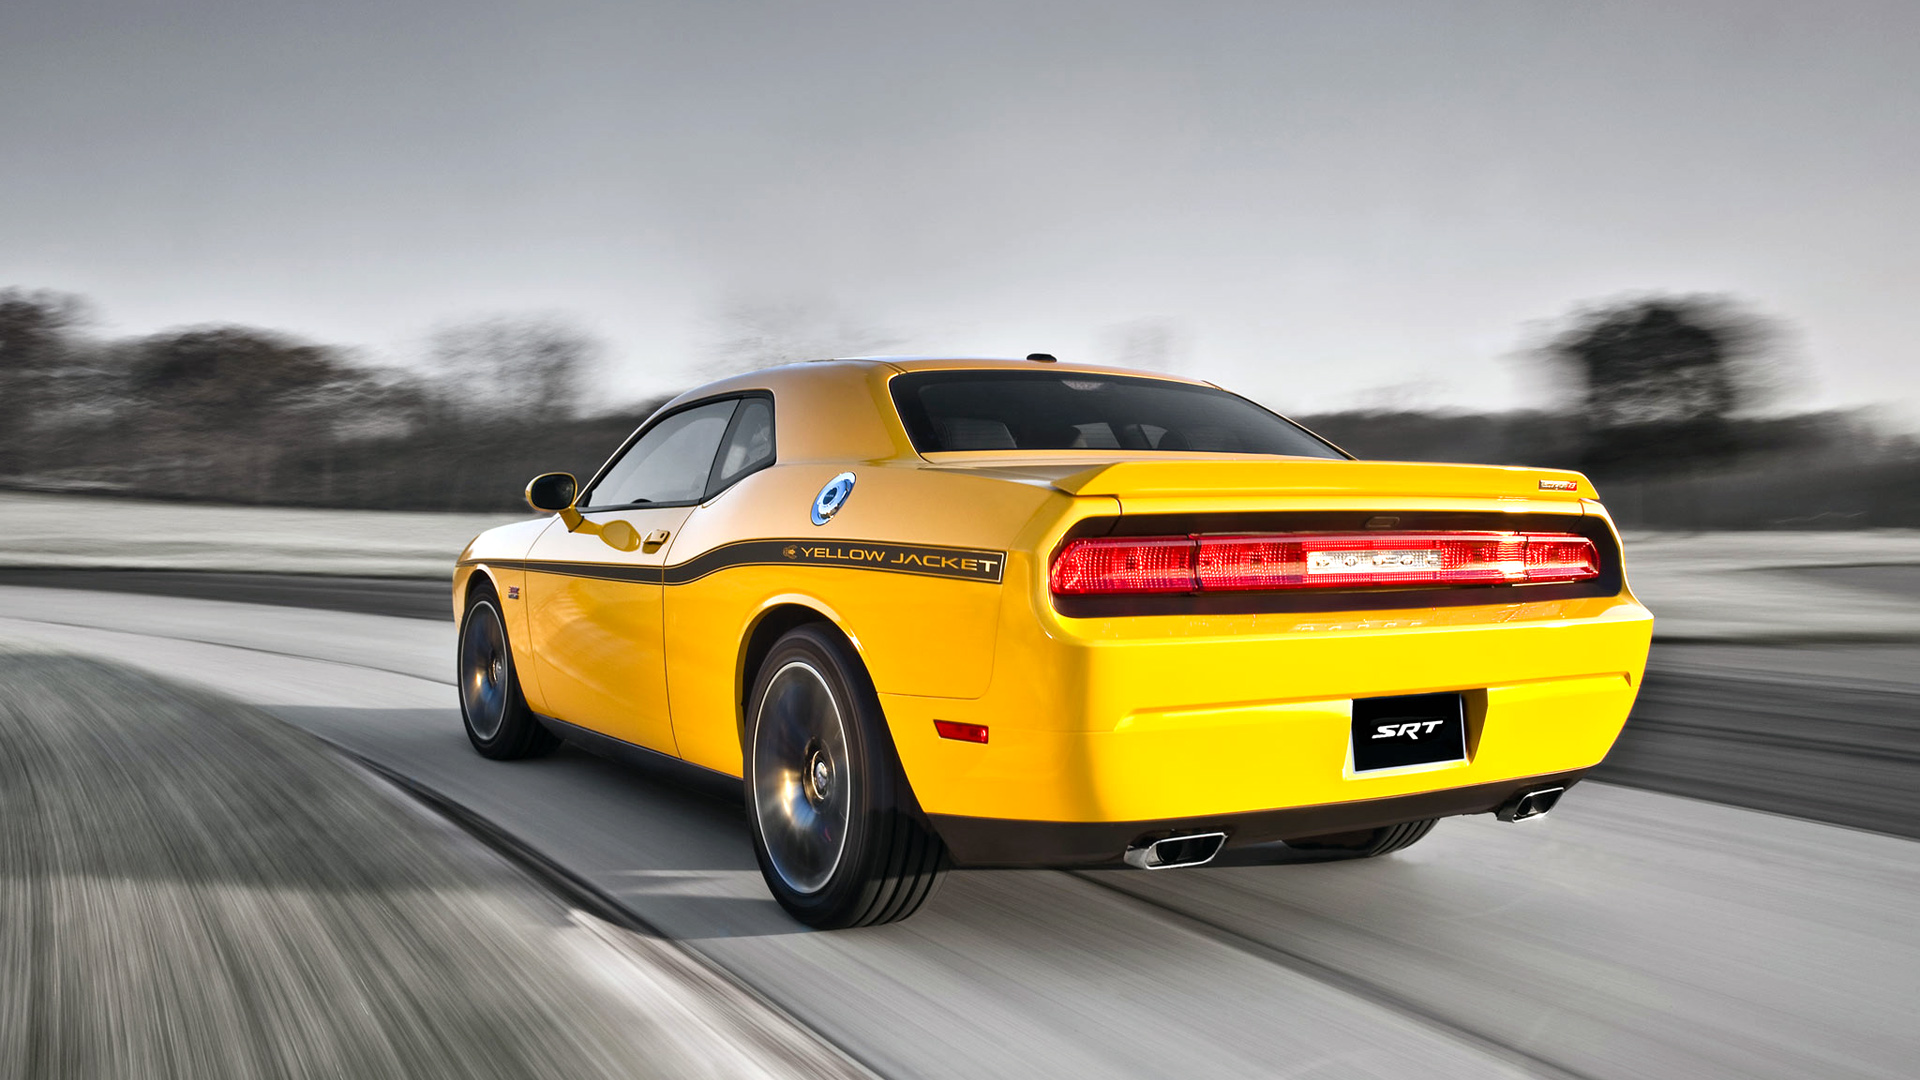 Dodge Challenger SRT8 392 Yellow Jacket Wallpaper   HD 1920x1080